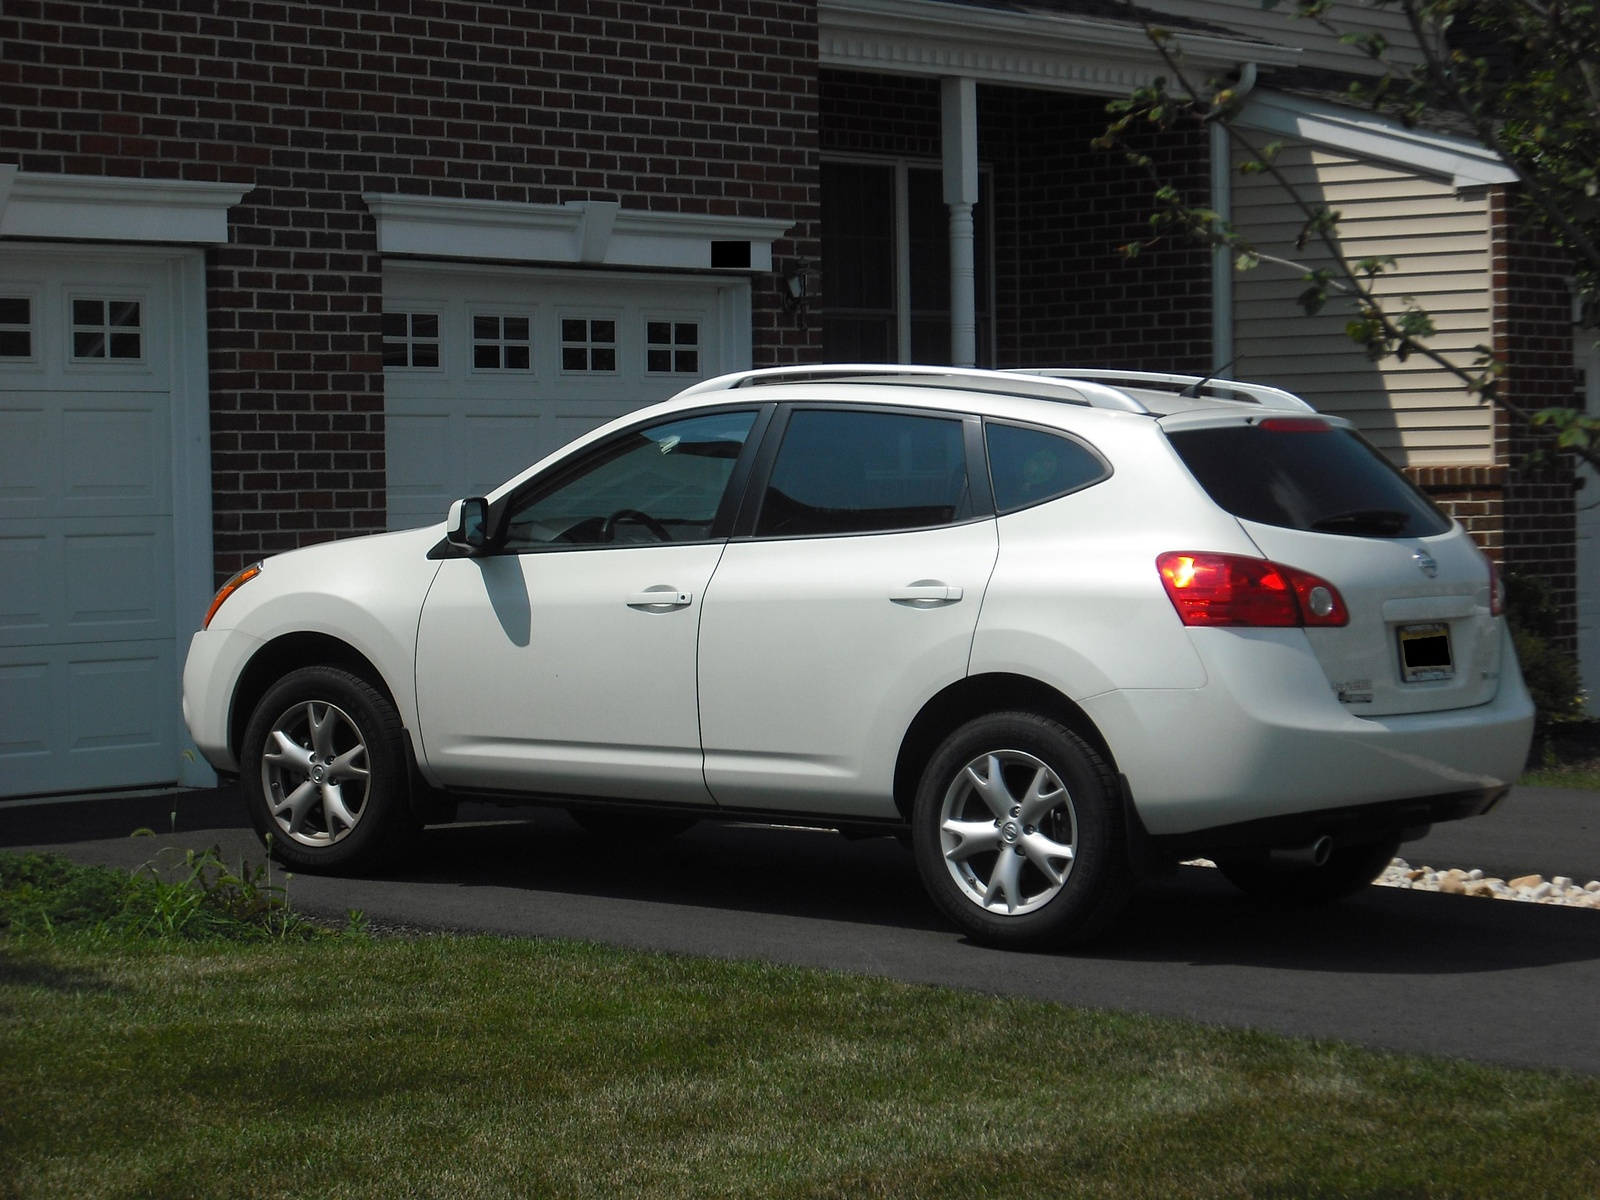 World automotive center january 2012 nissan rogue is a compact crossover suv vanachro Image collections